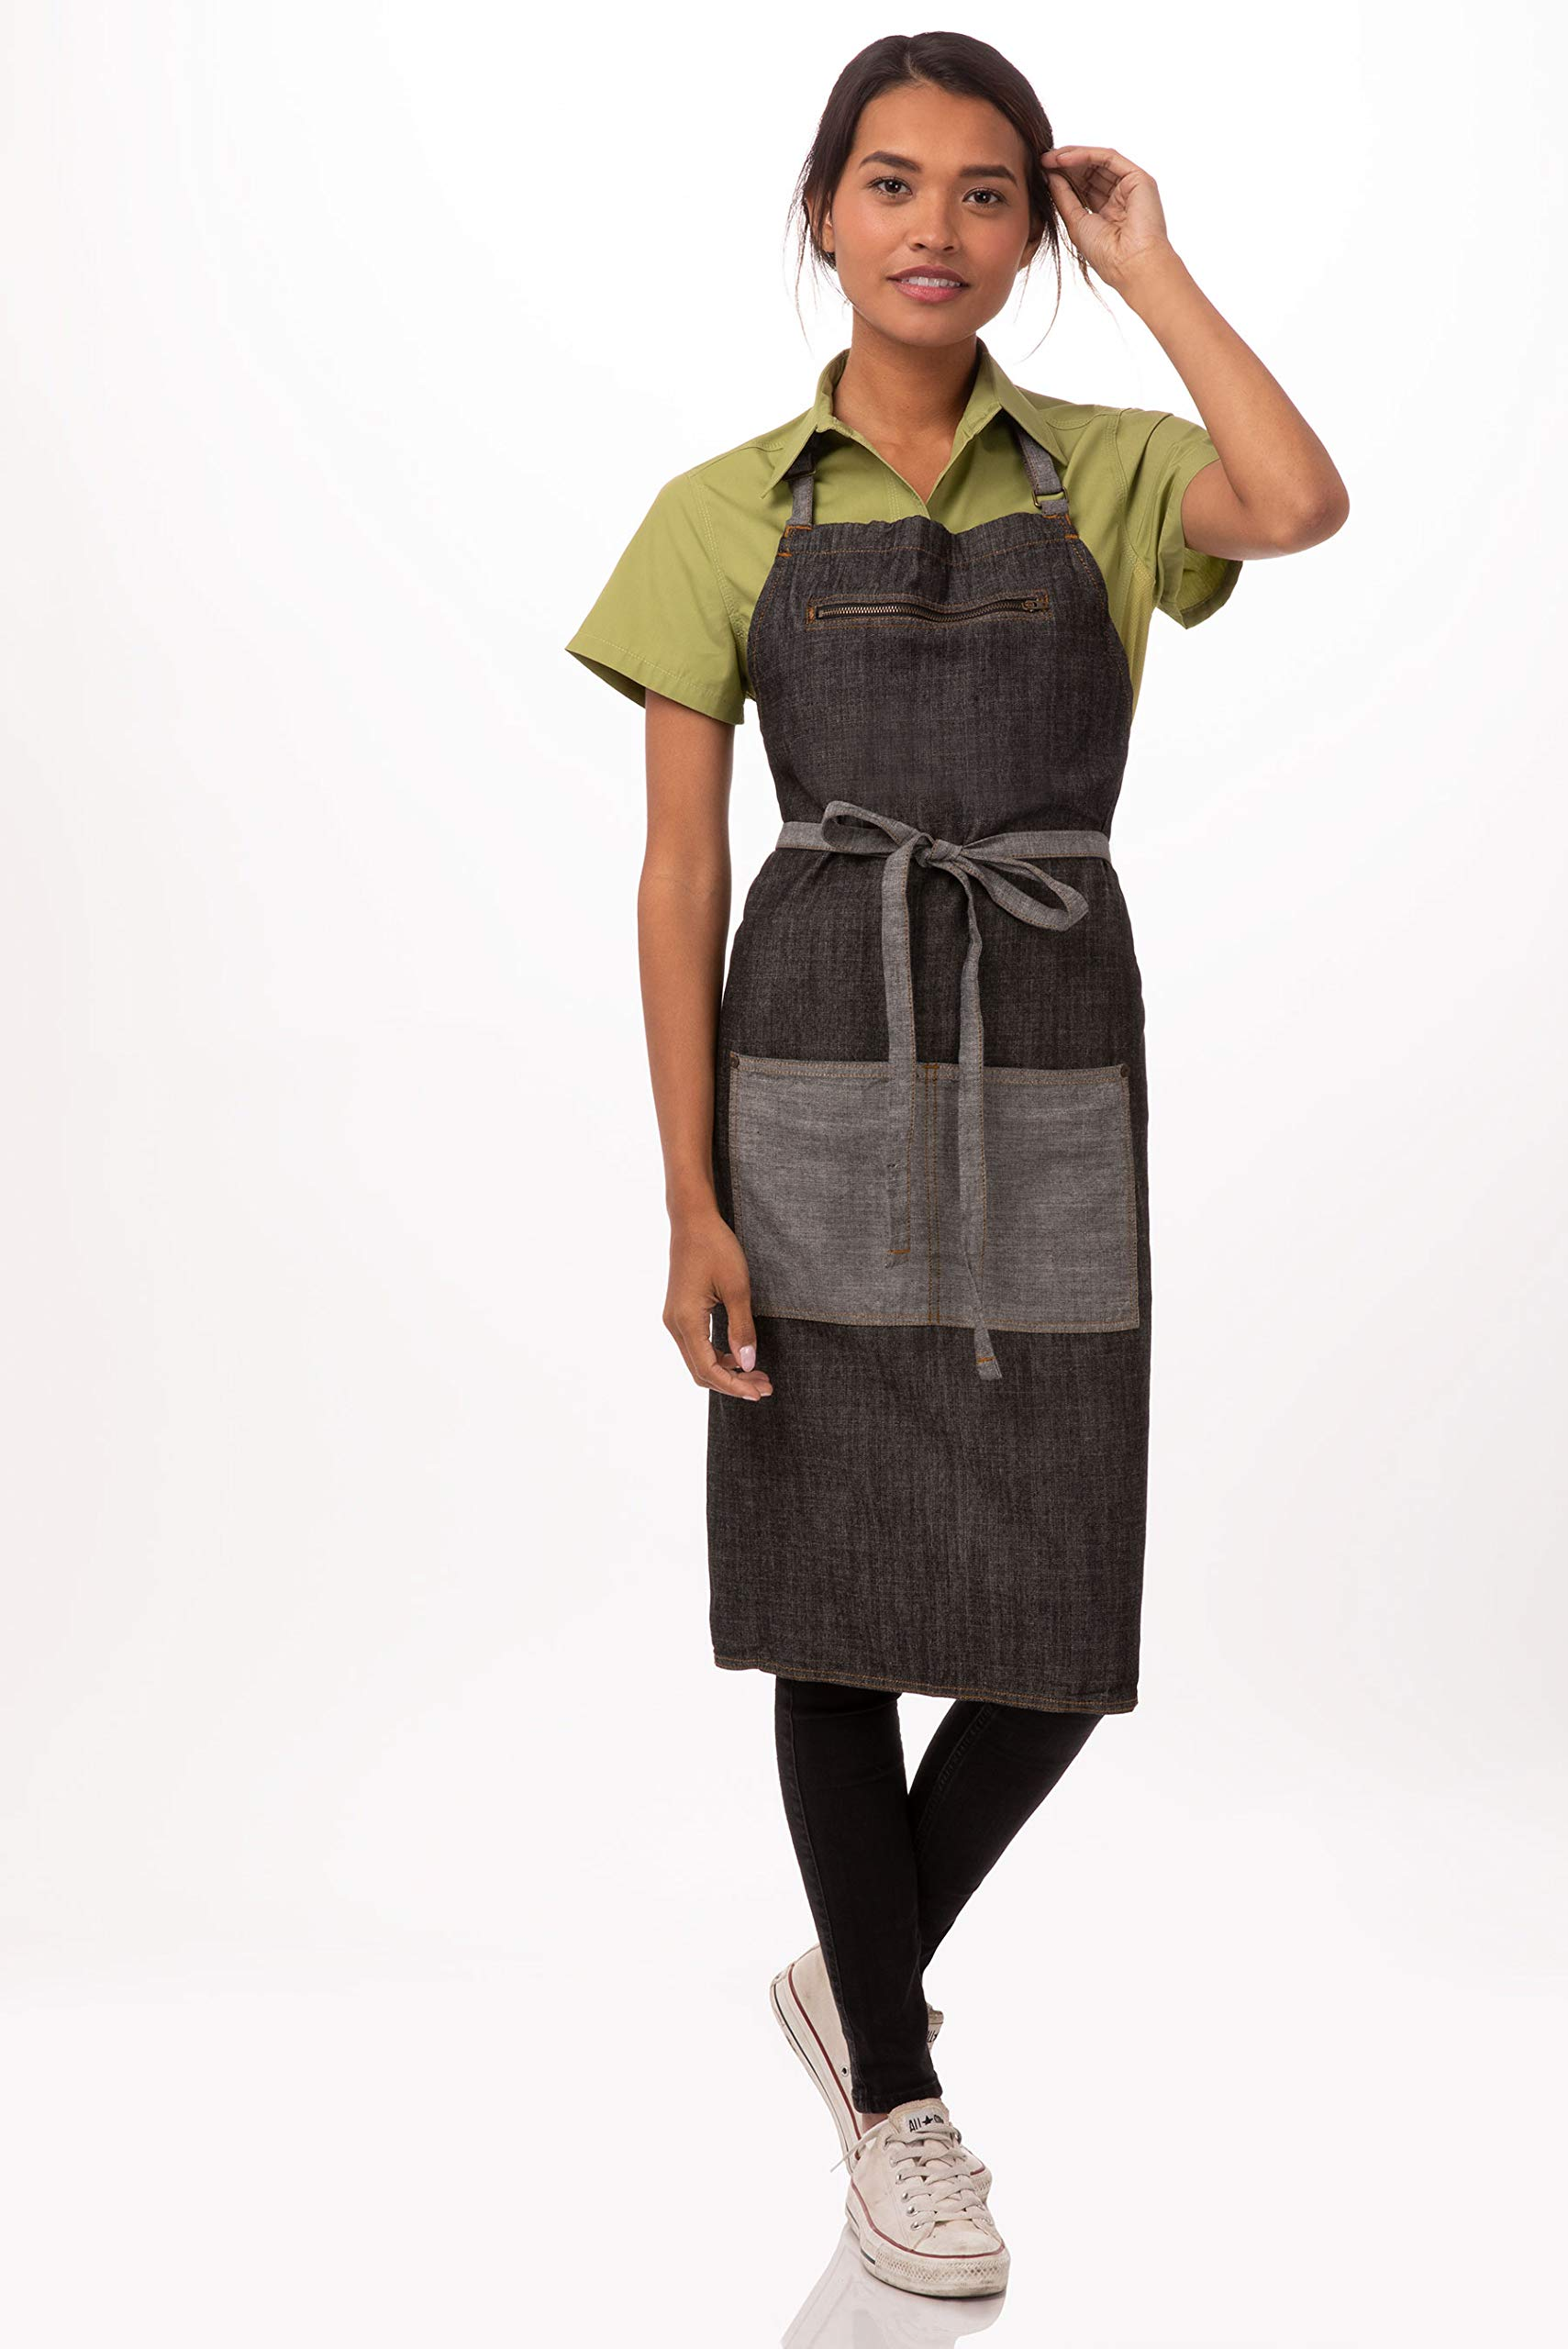 Chef Works Unisex Manhattan Bib Apron, Black, One Size by Chef Works